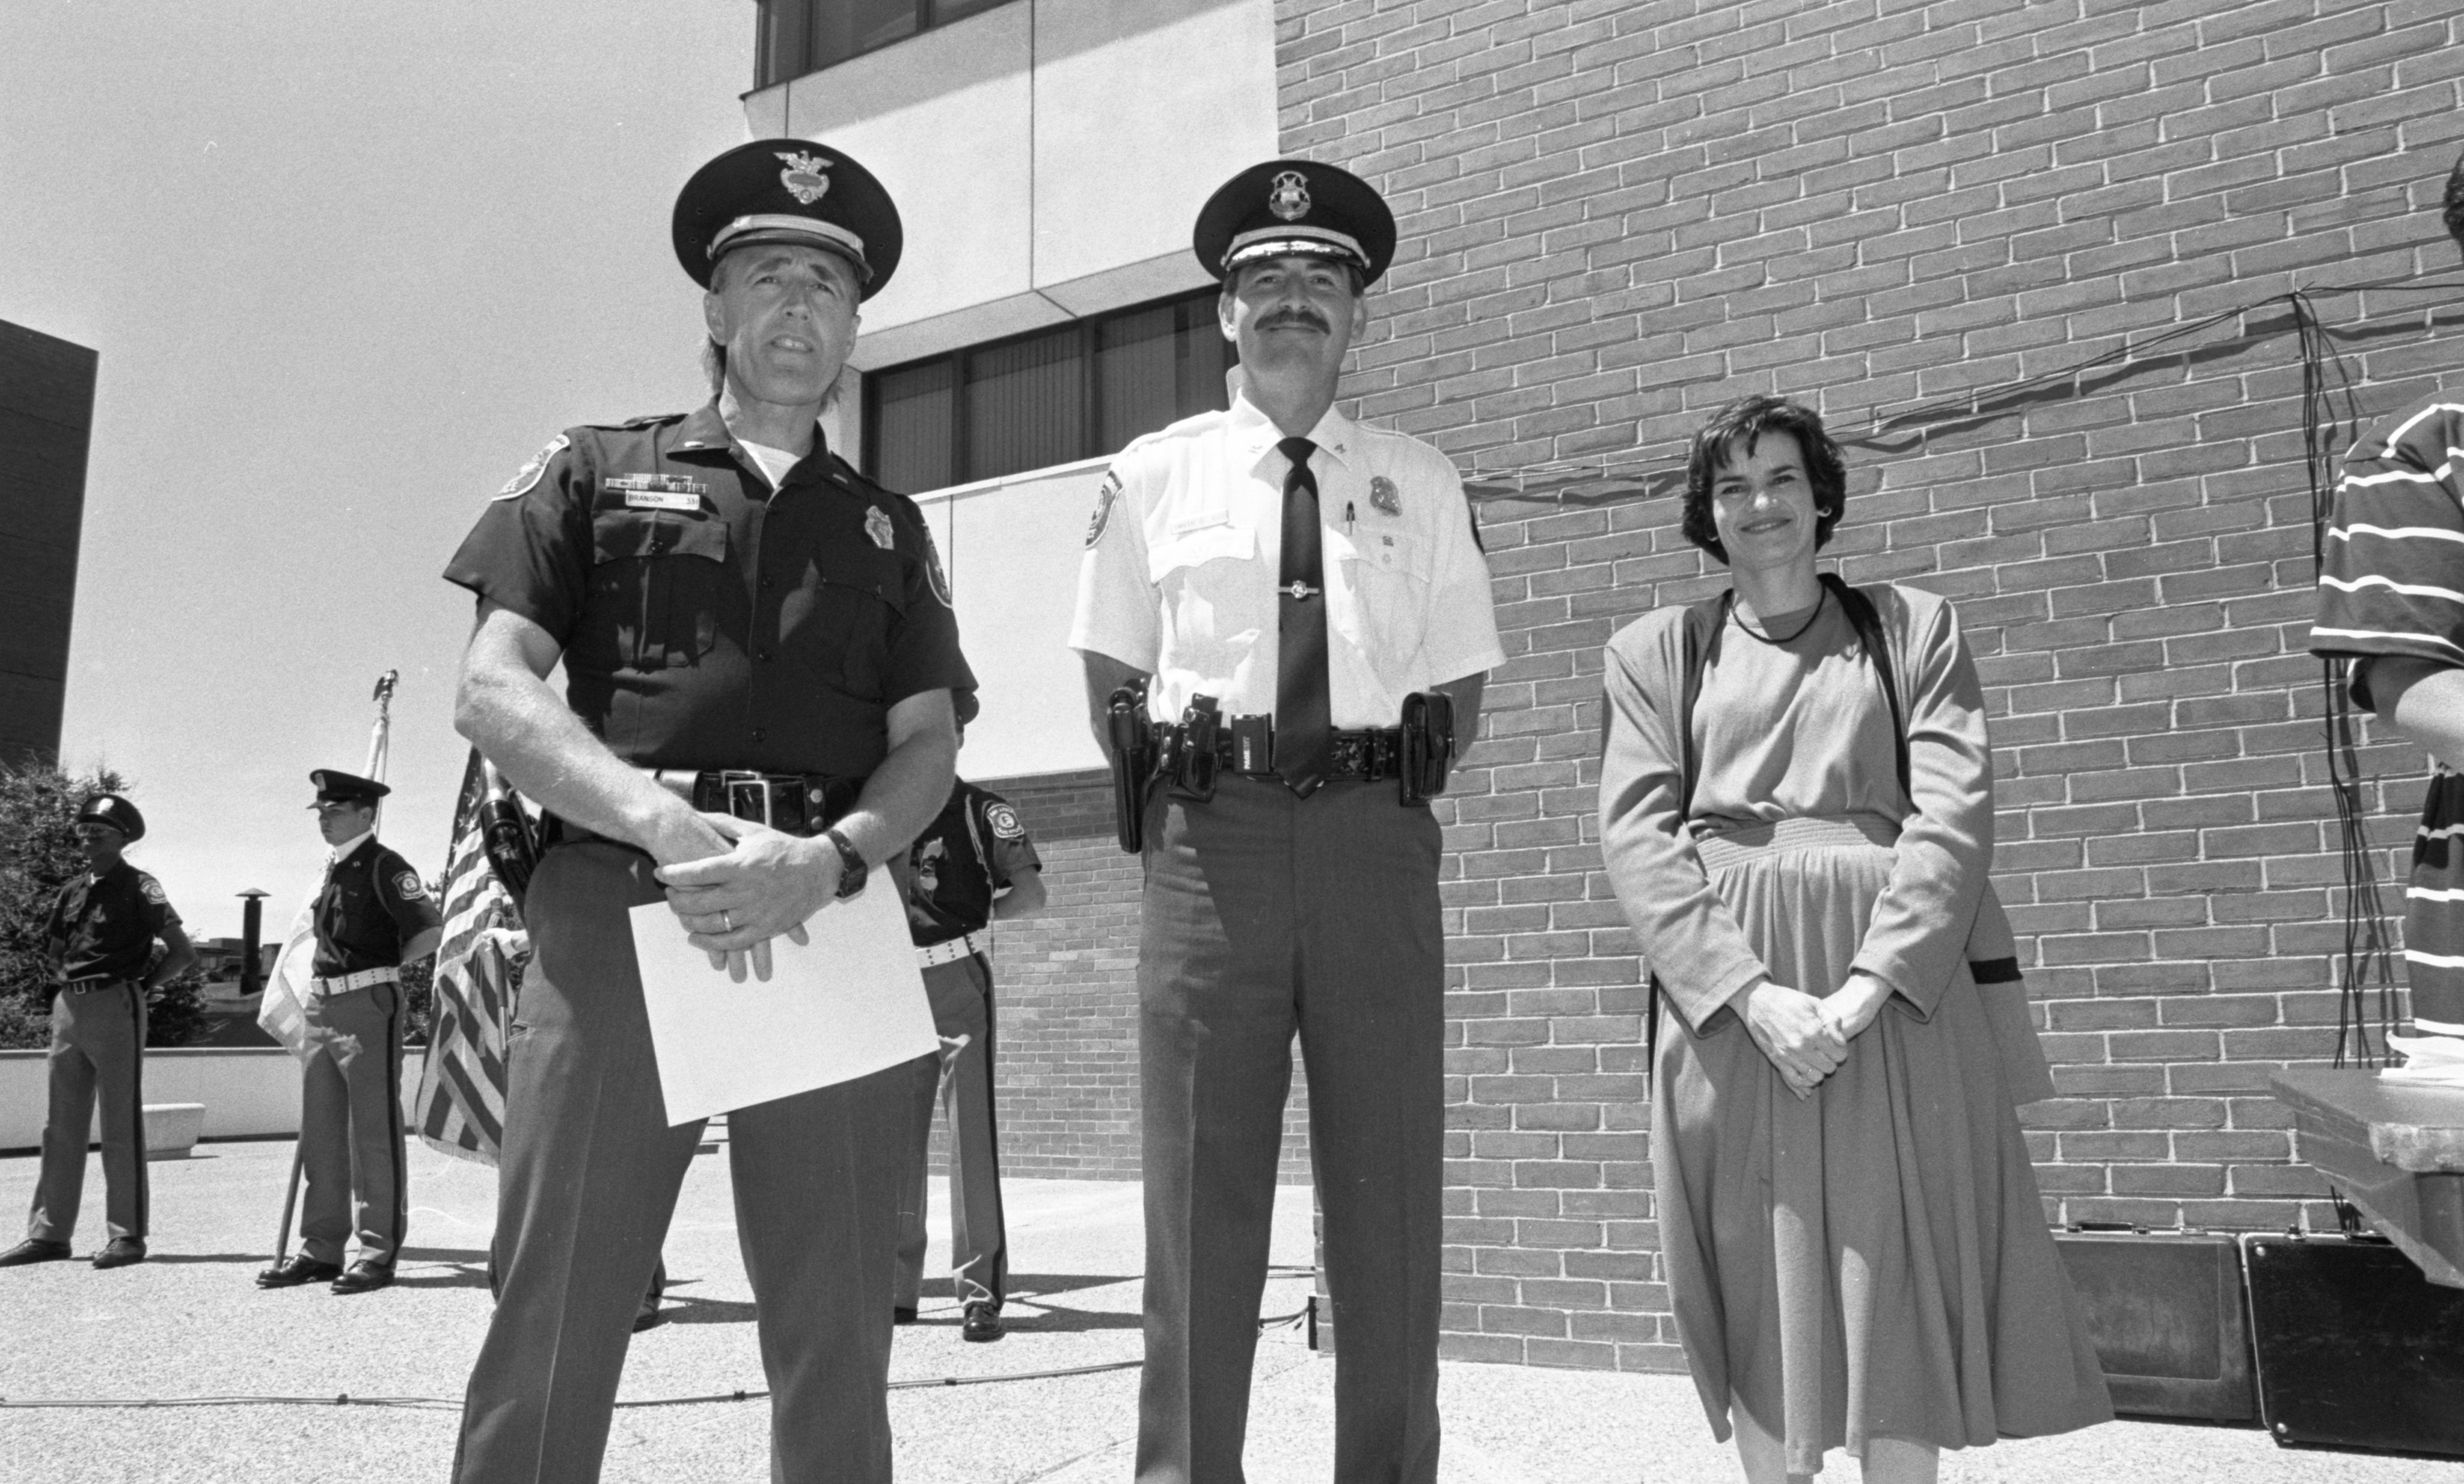 Lt. Dan Branson Honored At Ann Arbor Police Department Awards Ceremony, June 1991 image